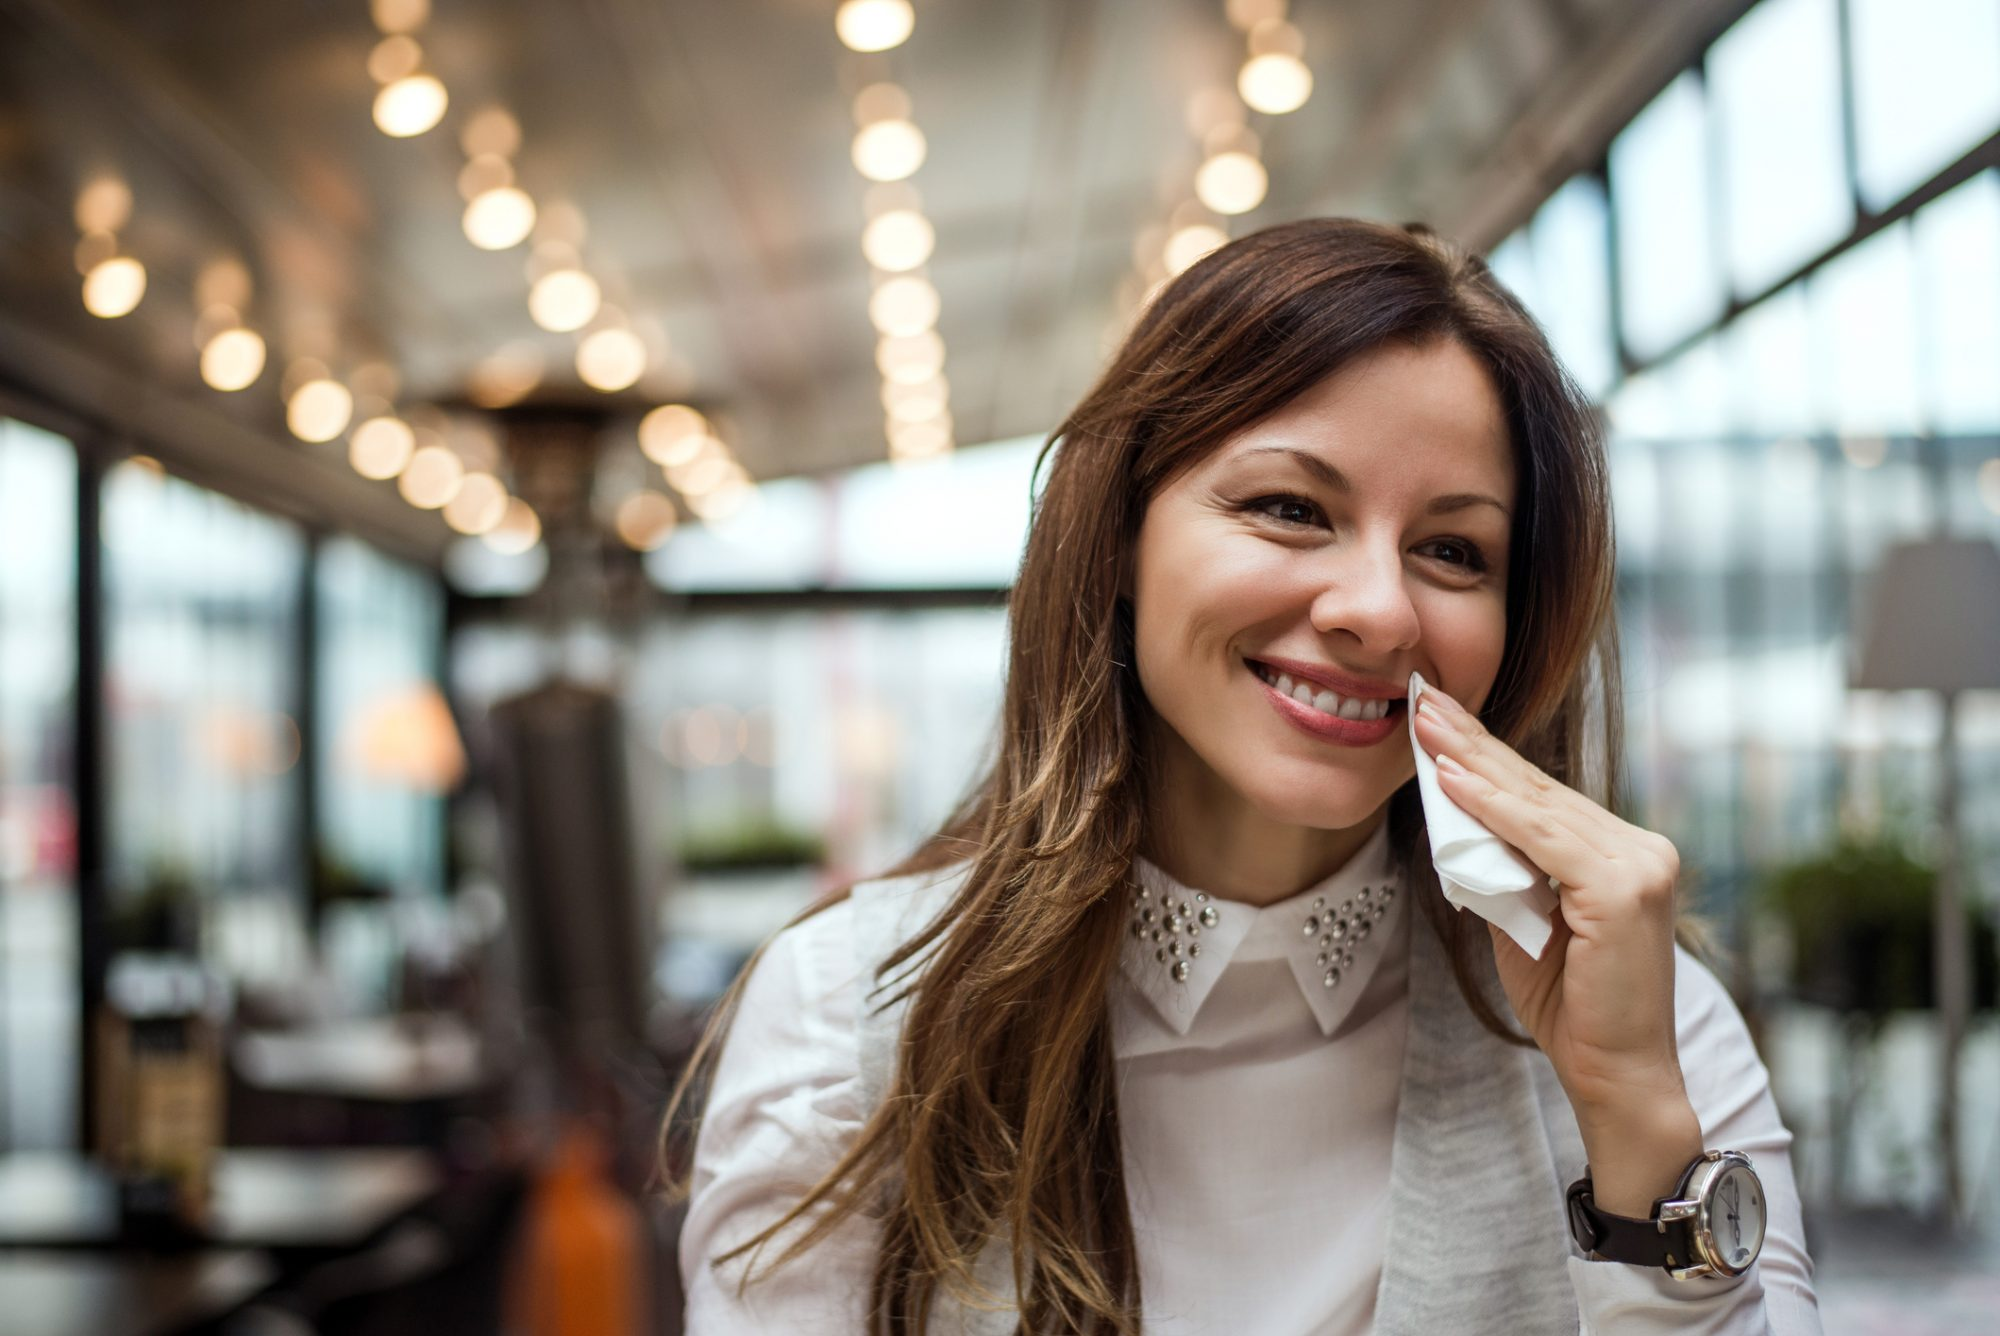 Woman wiping mouth with napkin